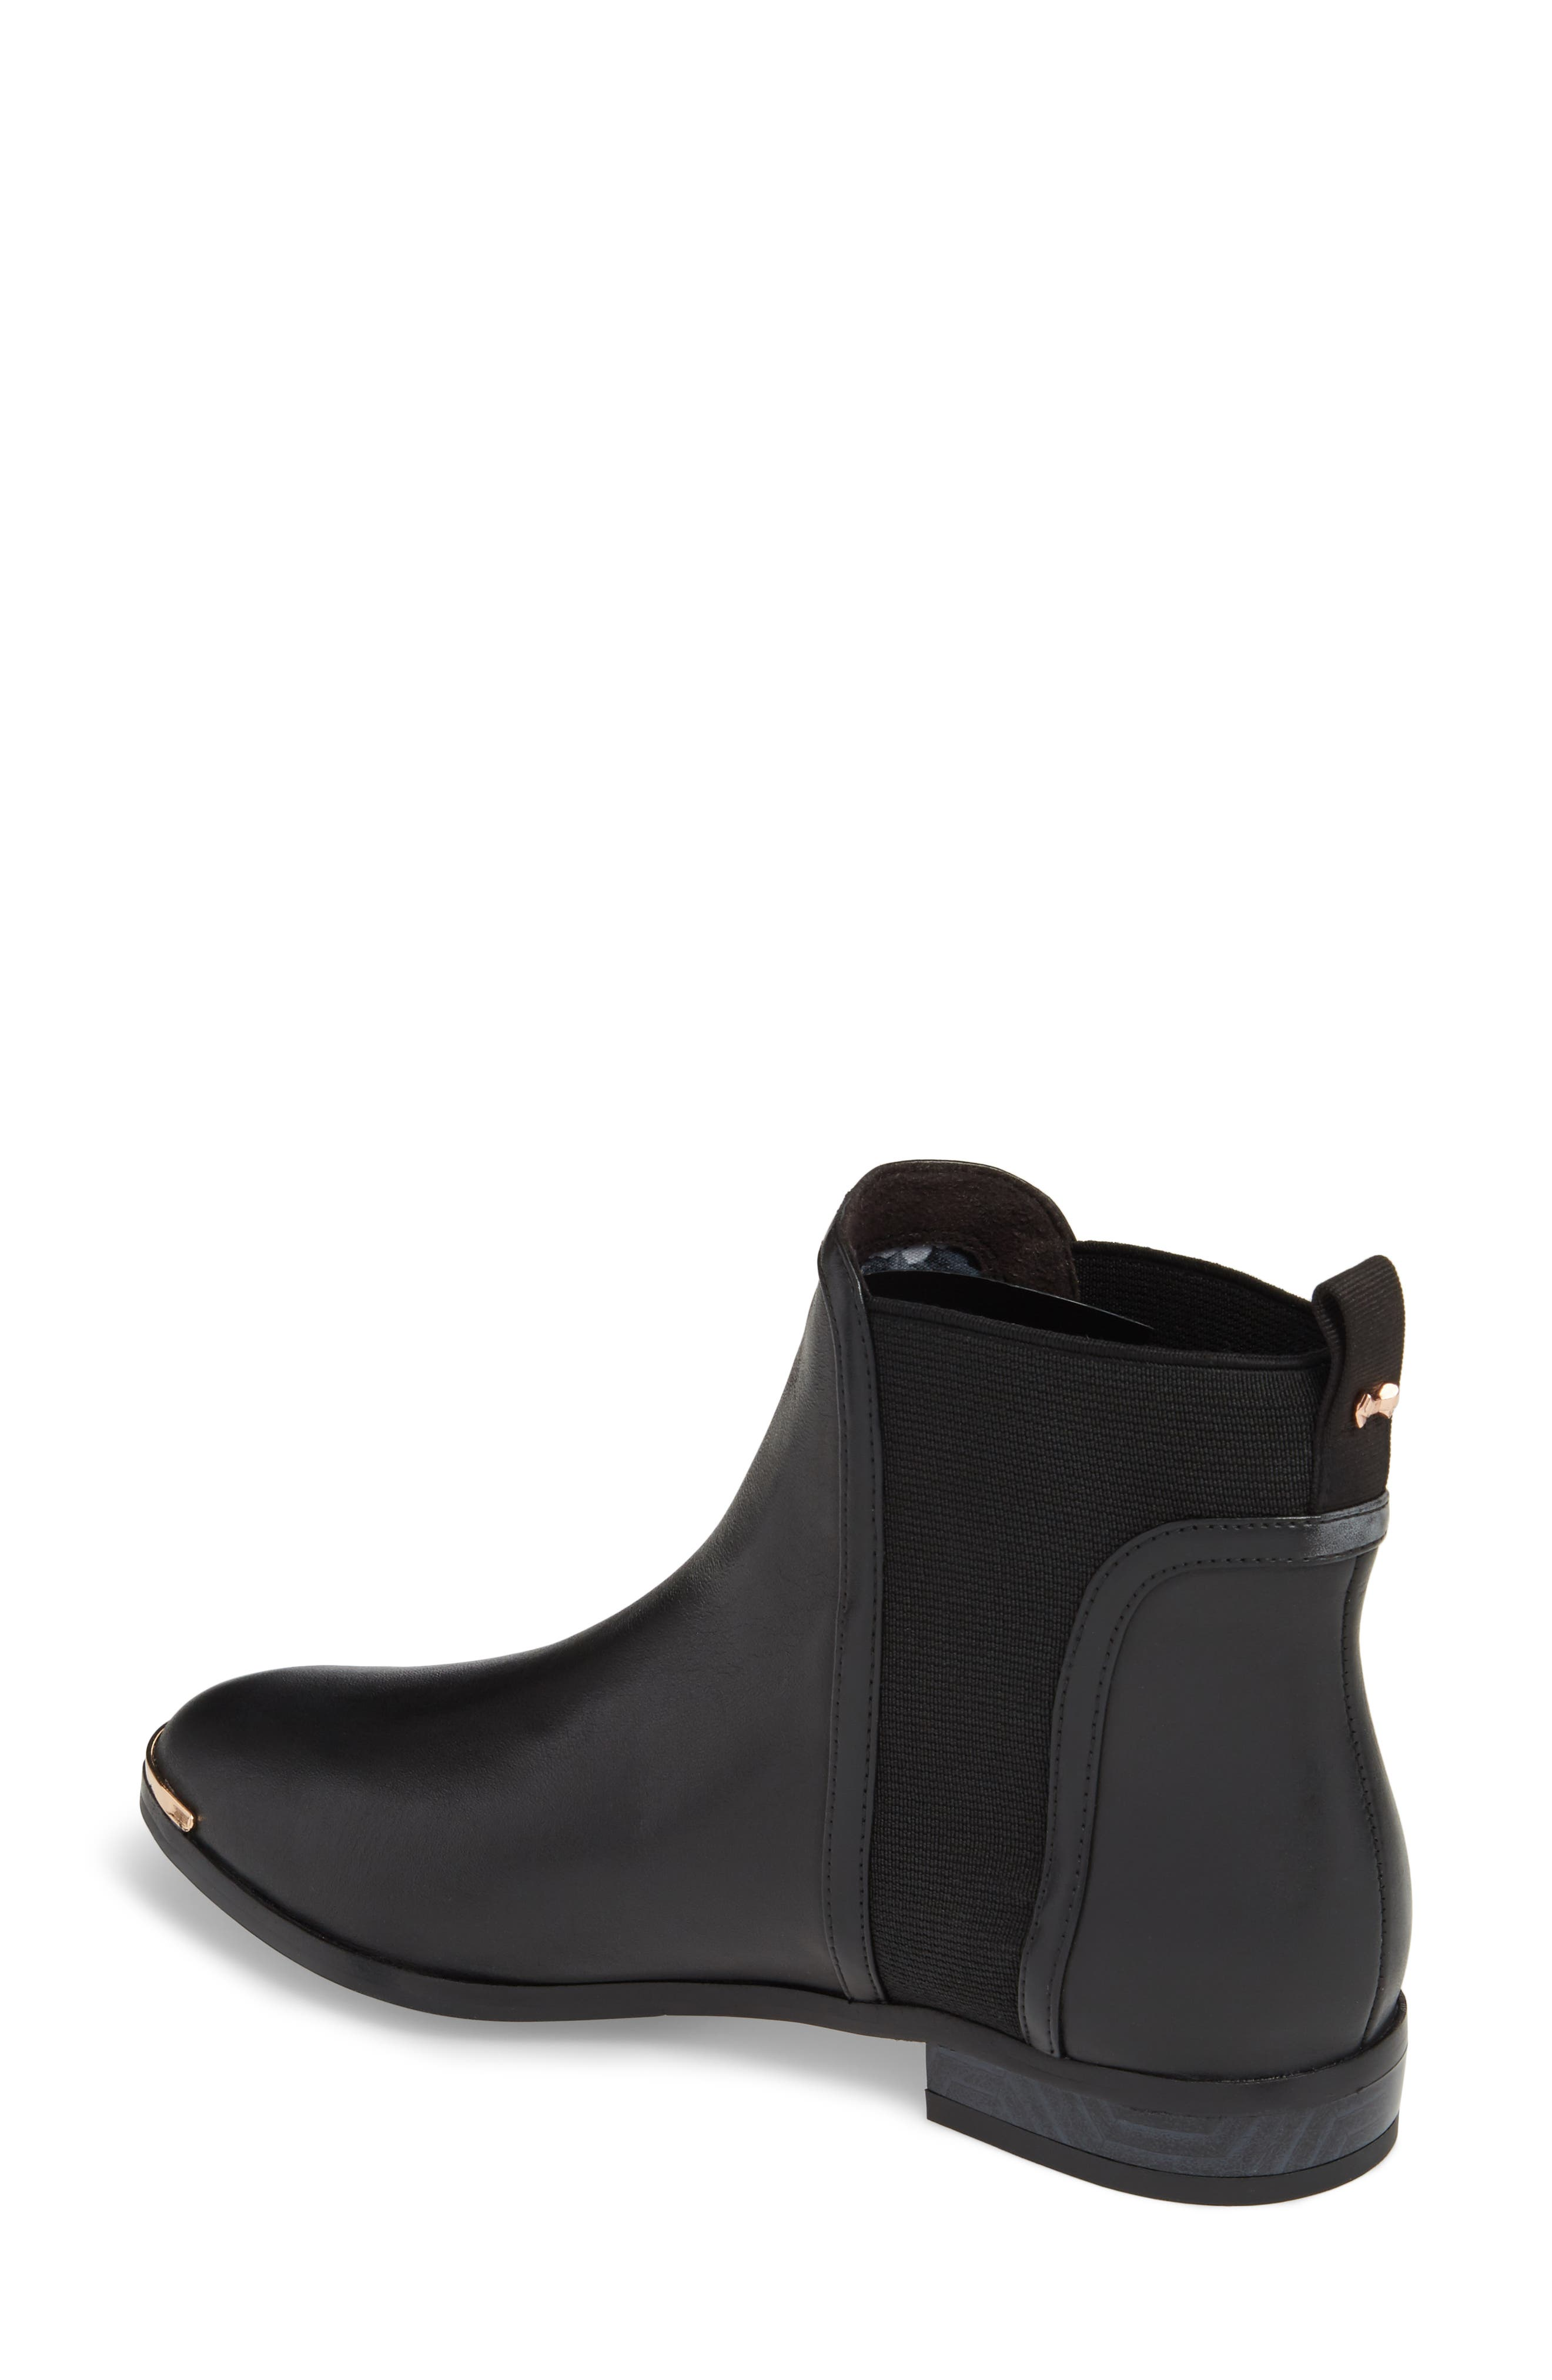 Kerei Chelsea Boot,                             Alternate thumbnail 2, color,                             001